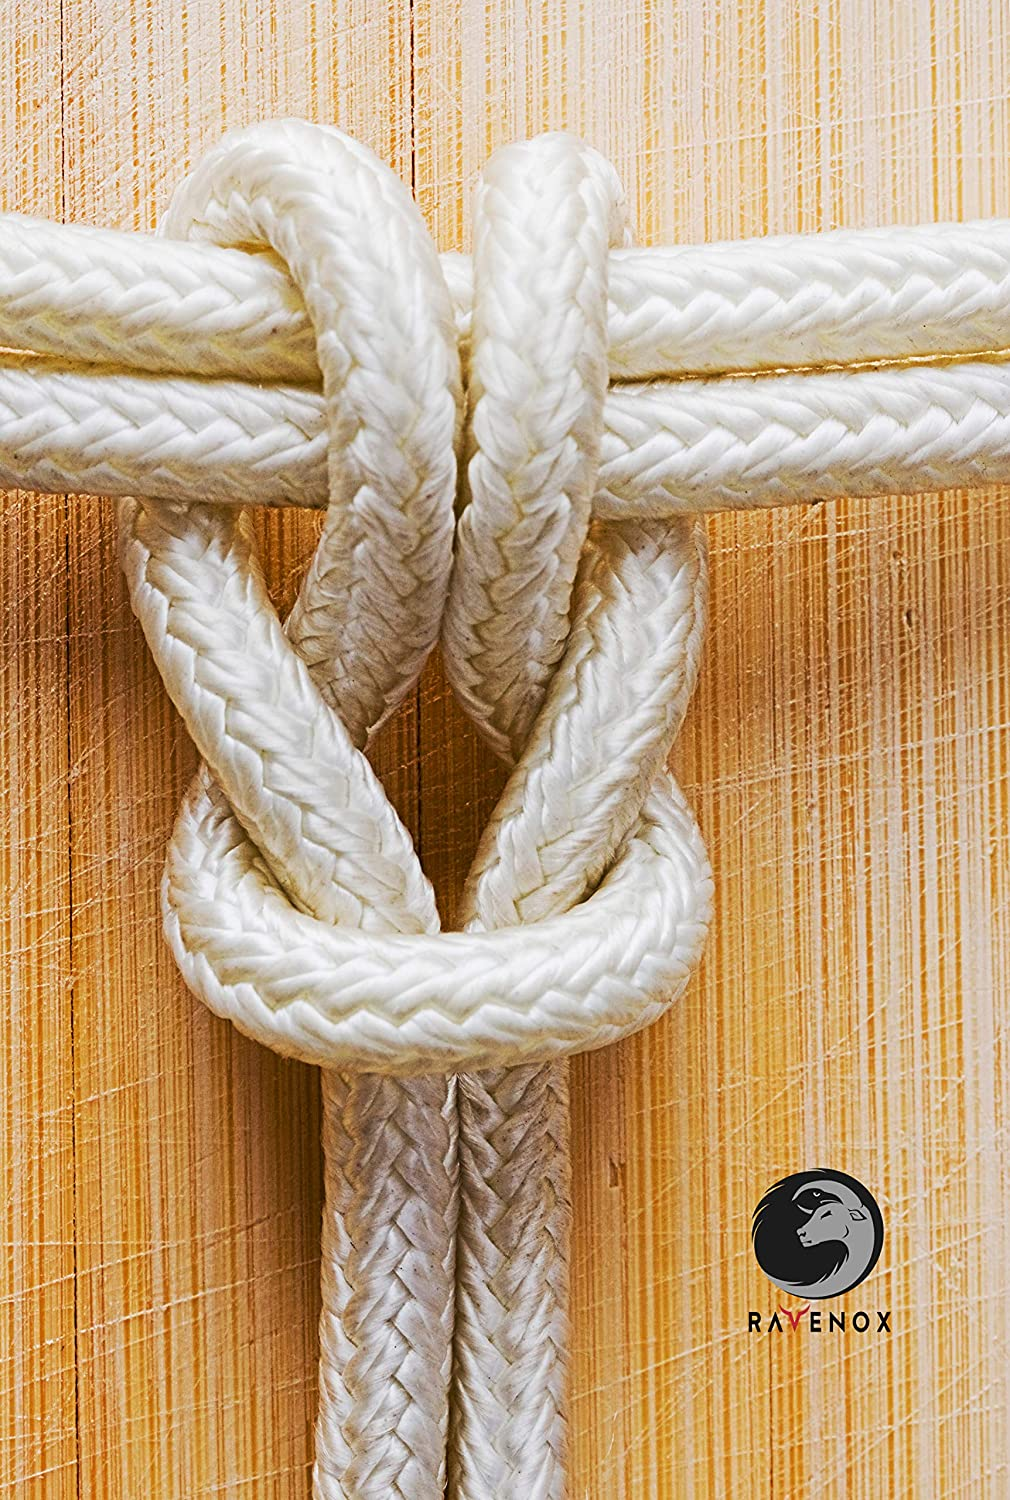 Strong Braided Nylon Cord Yachts 1//2 x 10 FT Made in The USA White Dock Lines Mooring Lines /& General Purpose Ravenox by FMS Double Braid Nylon Rope - Anchor Rope